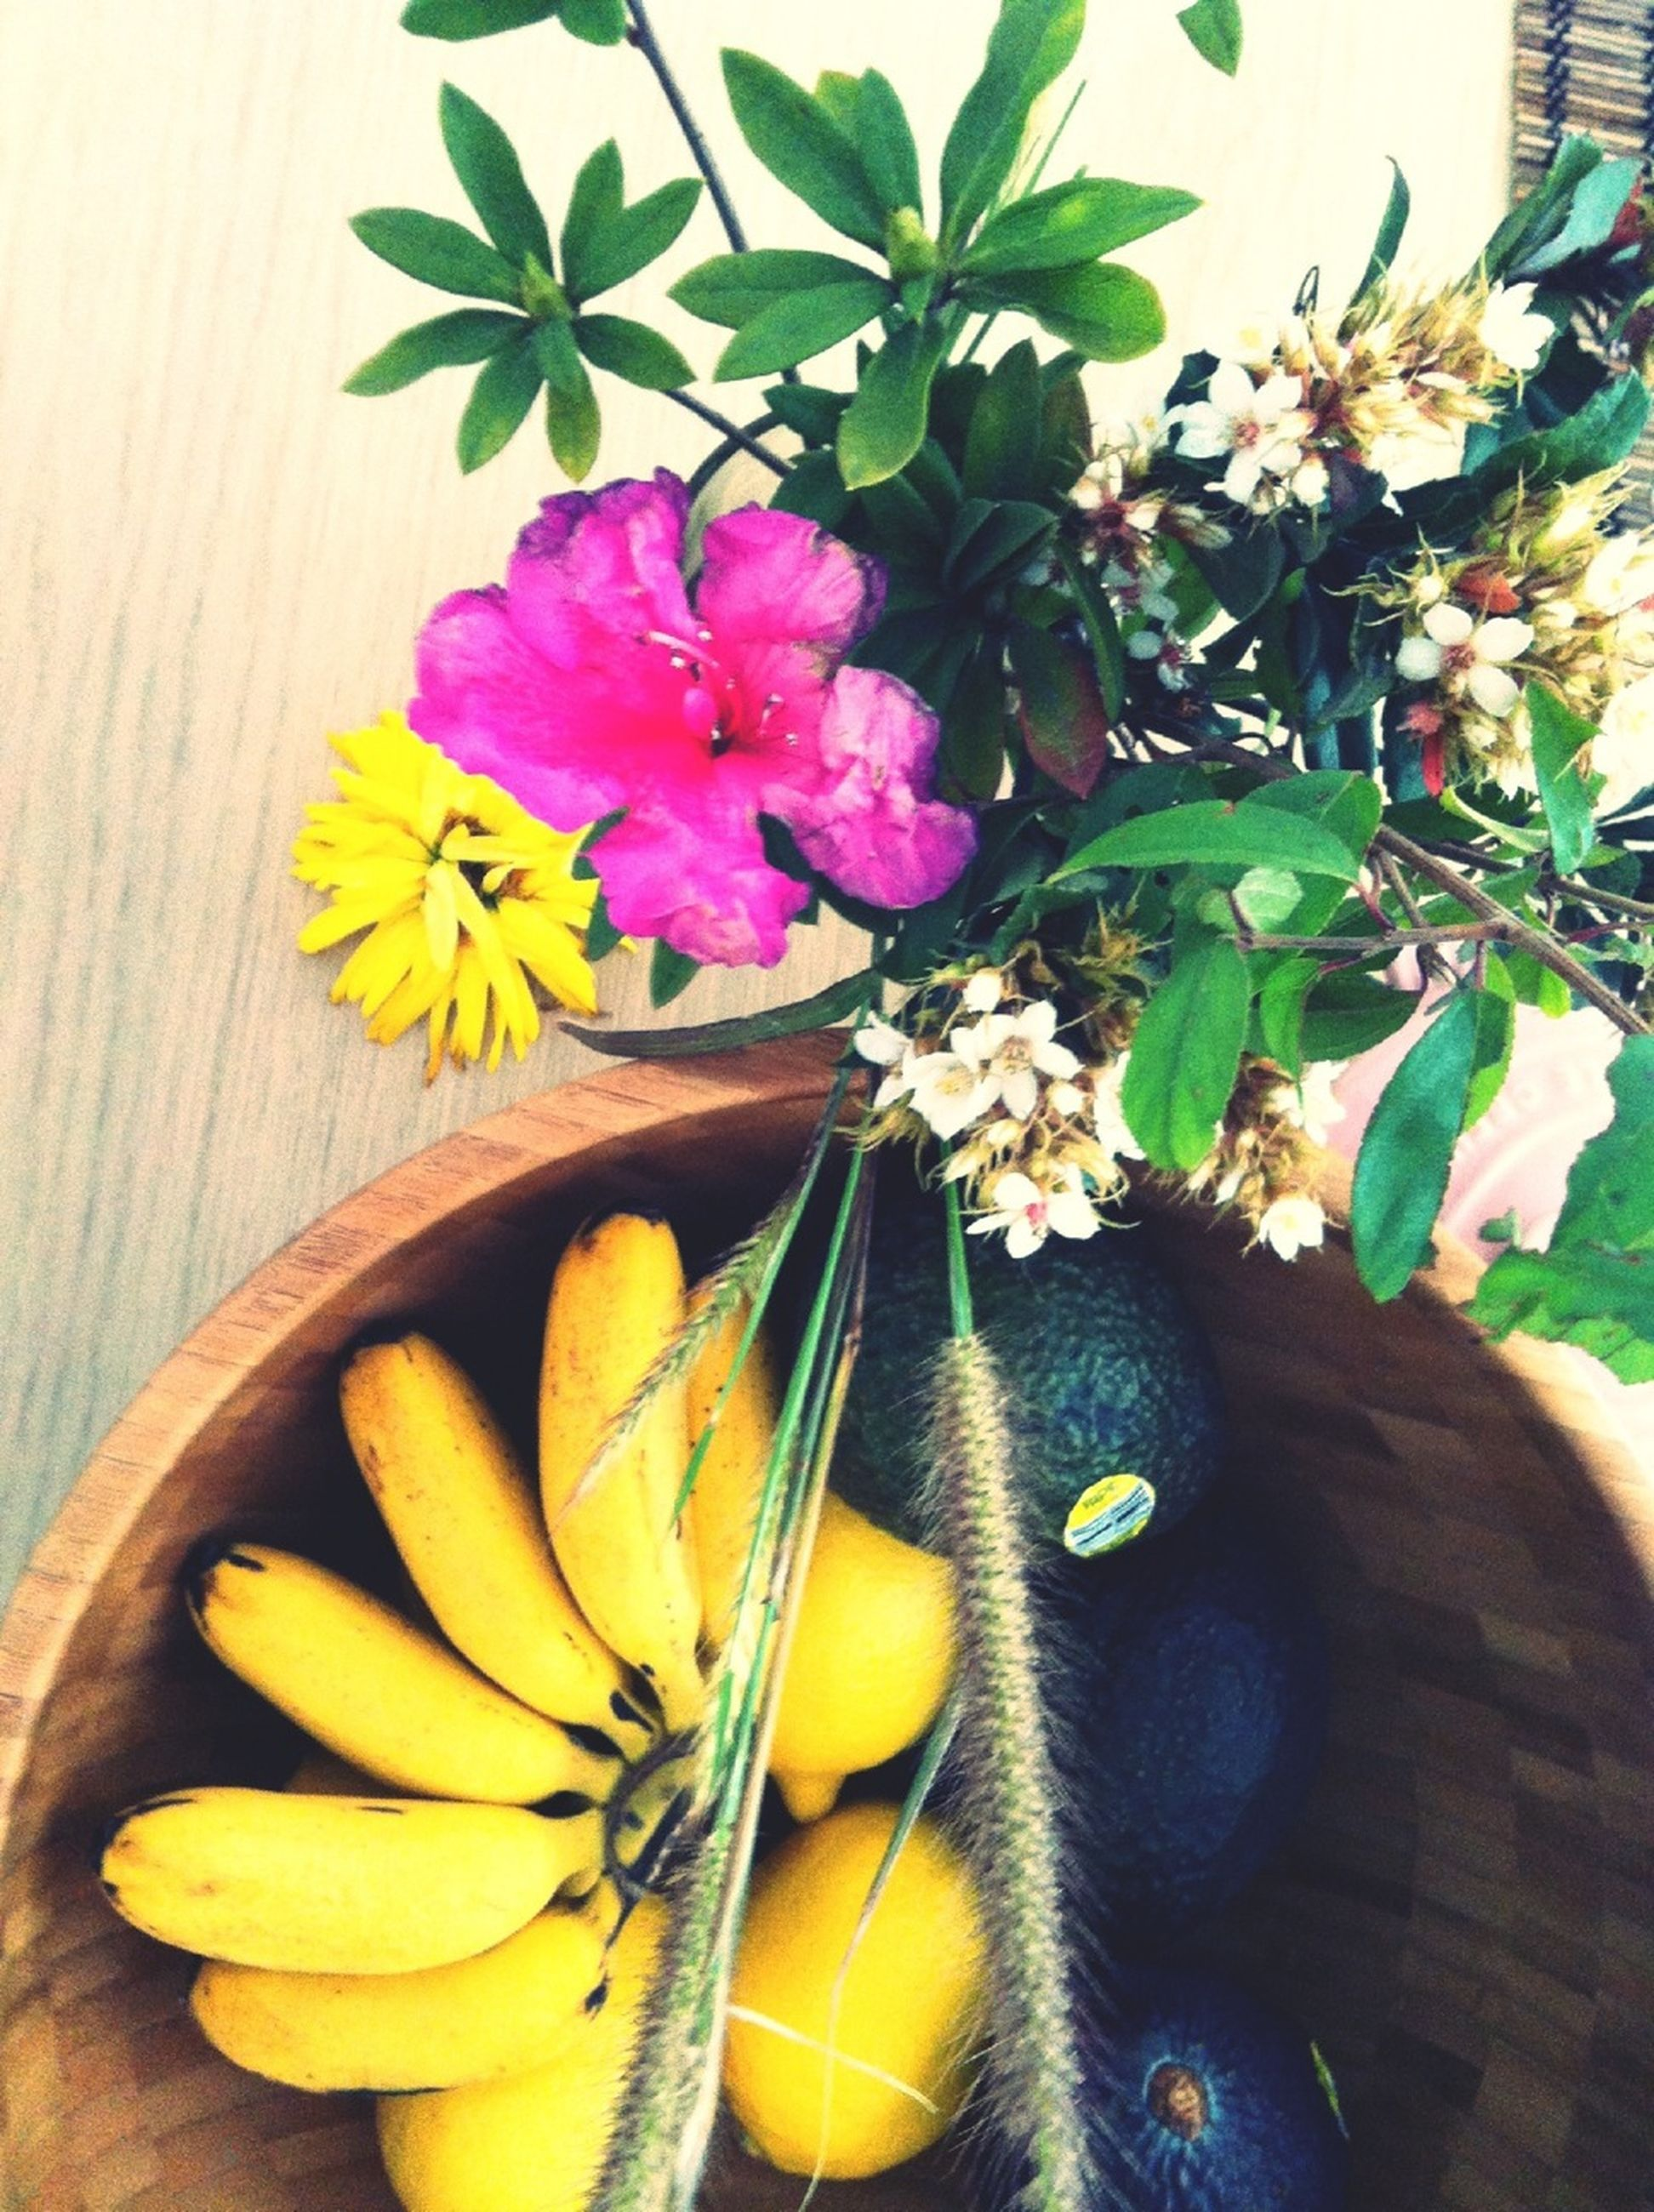 flower, freshness, yellow, table, high angle view, still life, indoors, fragility, wood - material, close-up, food, petal, food and drink, wooden, no people, leaf, vase, day, fruit, flower head